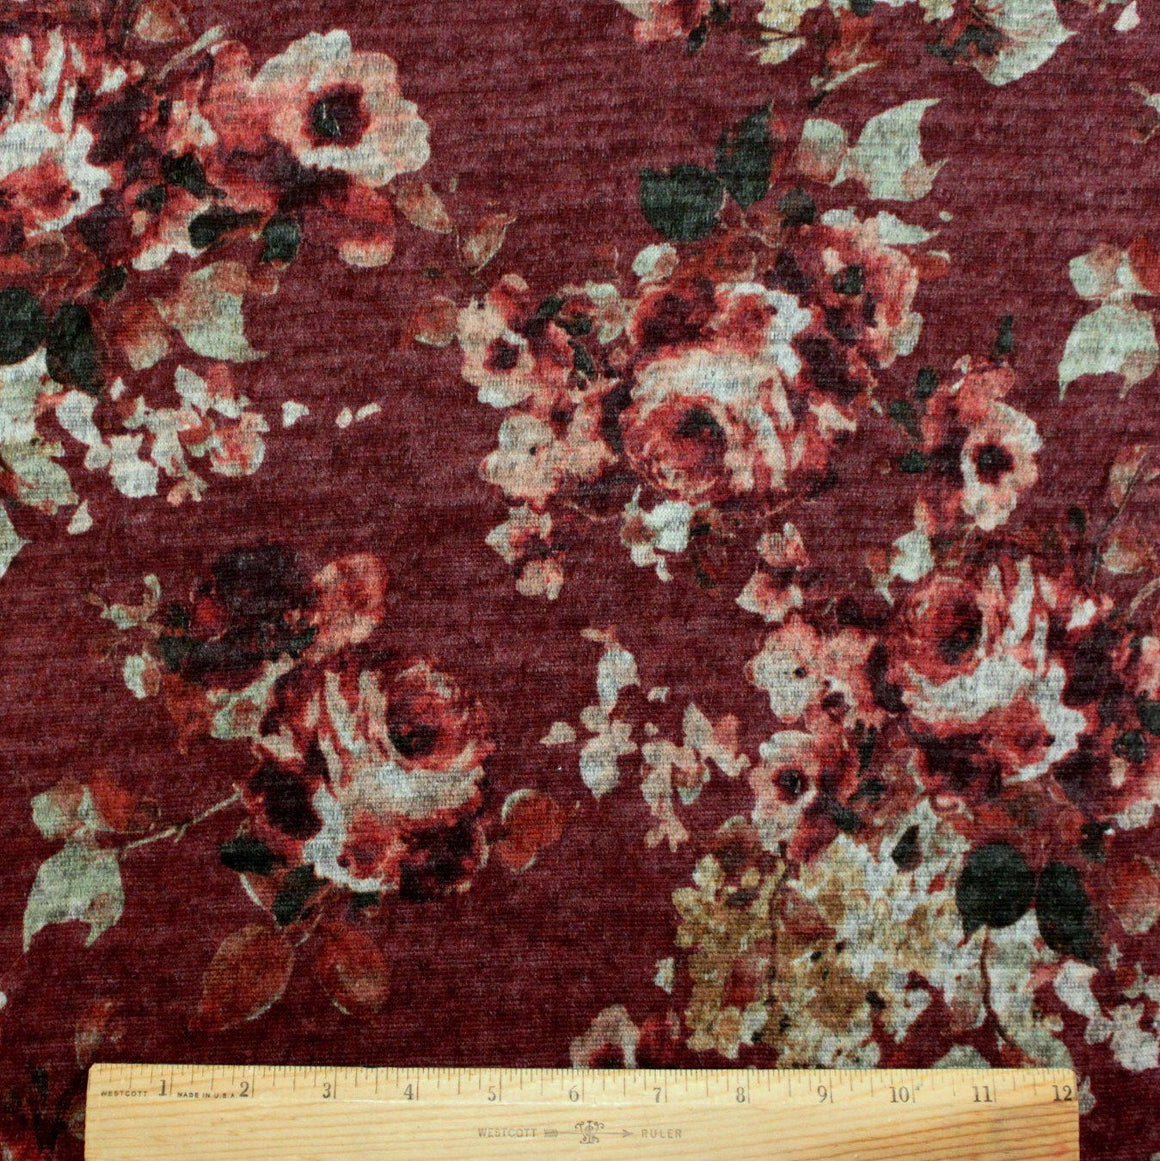 Burgundy Beige Rust and Green Floral Brushed Heathered Hacci Sweater Knit Fabric, 1 Yard - Raspberry Creek Fabrics